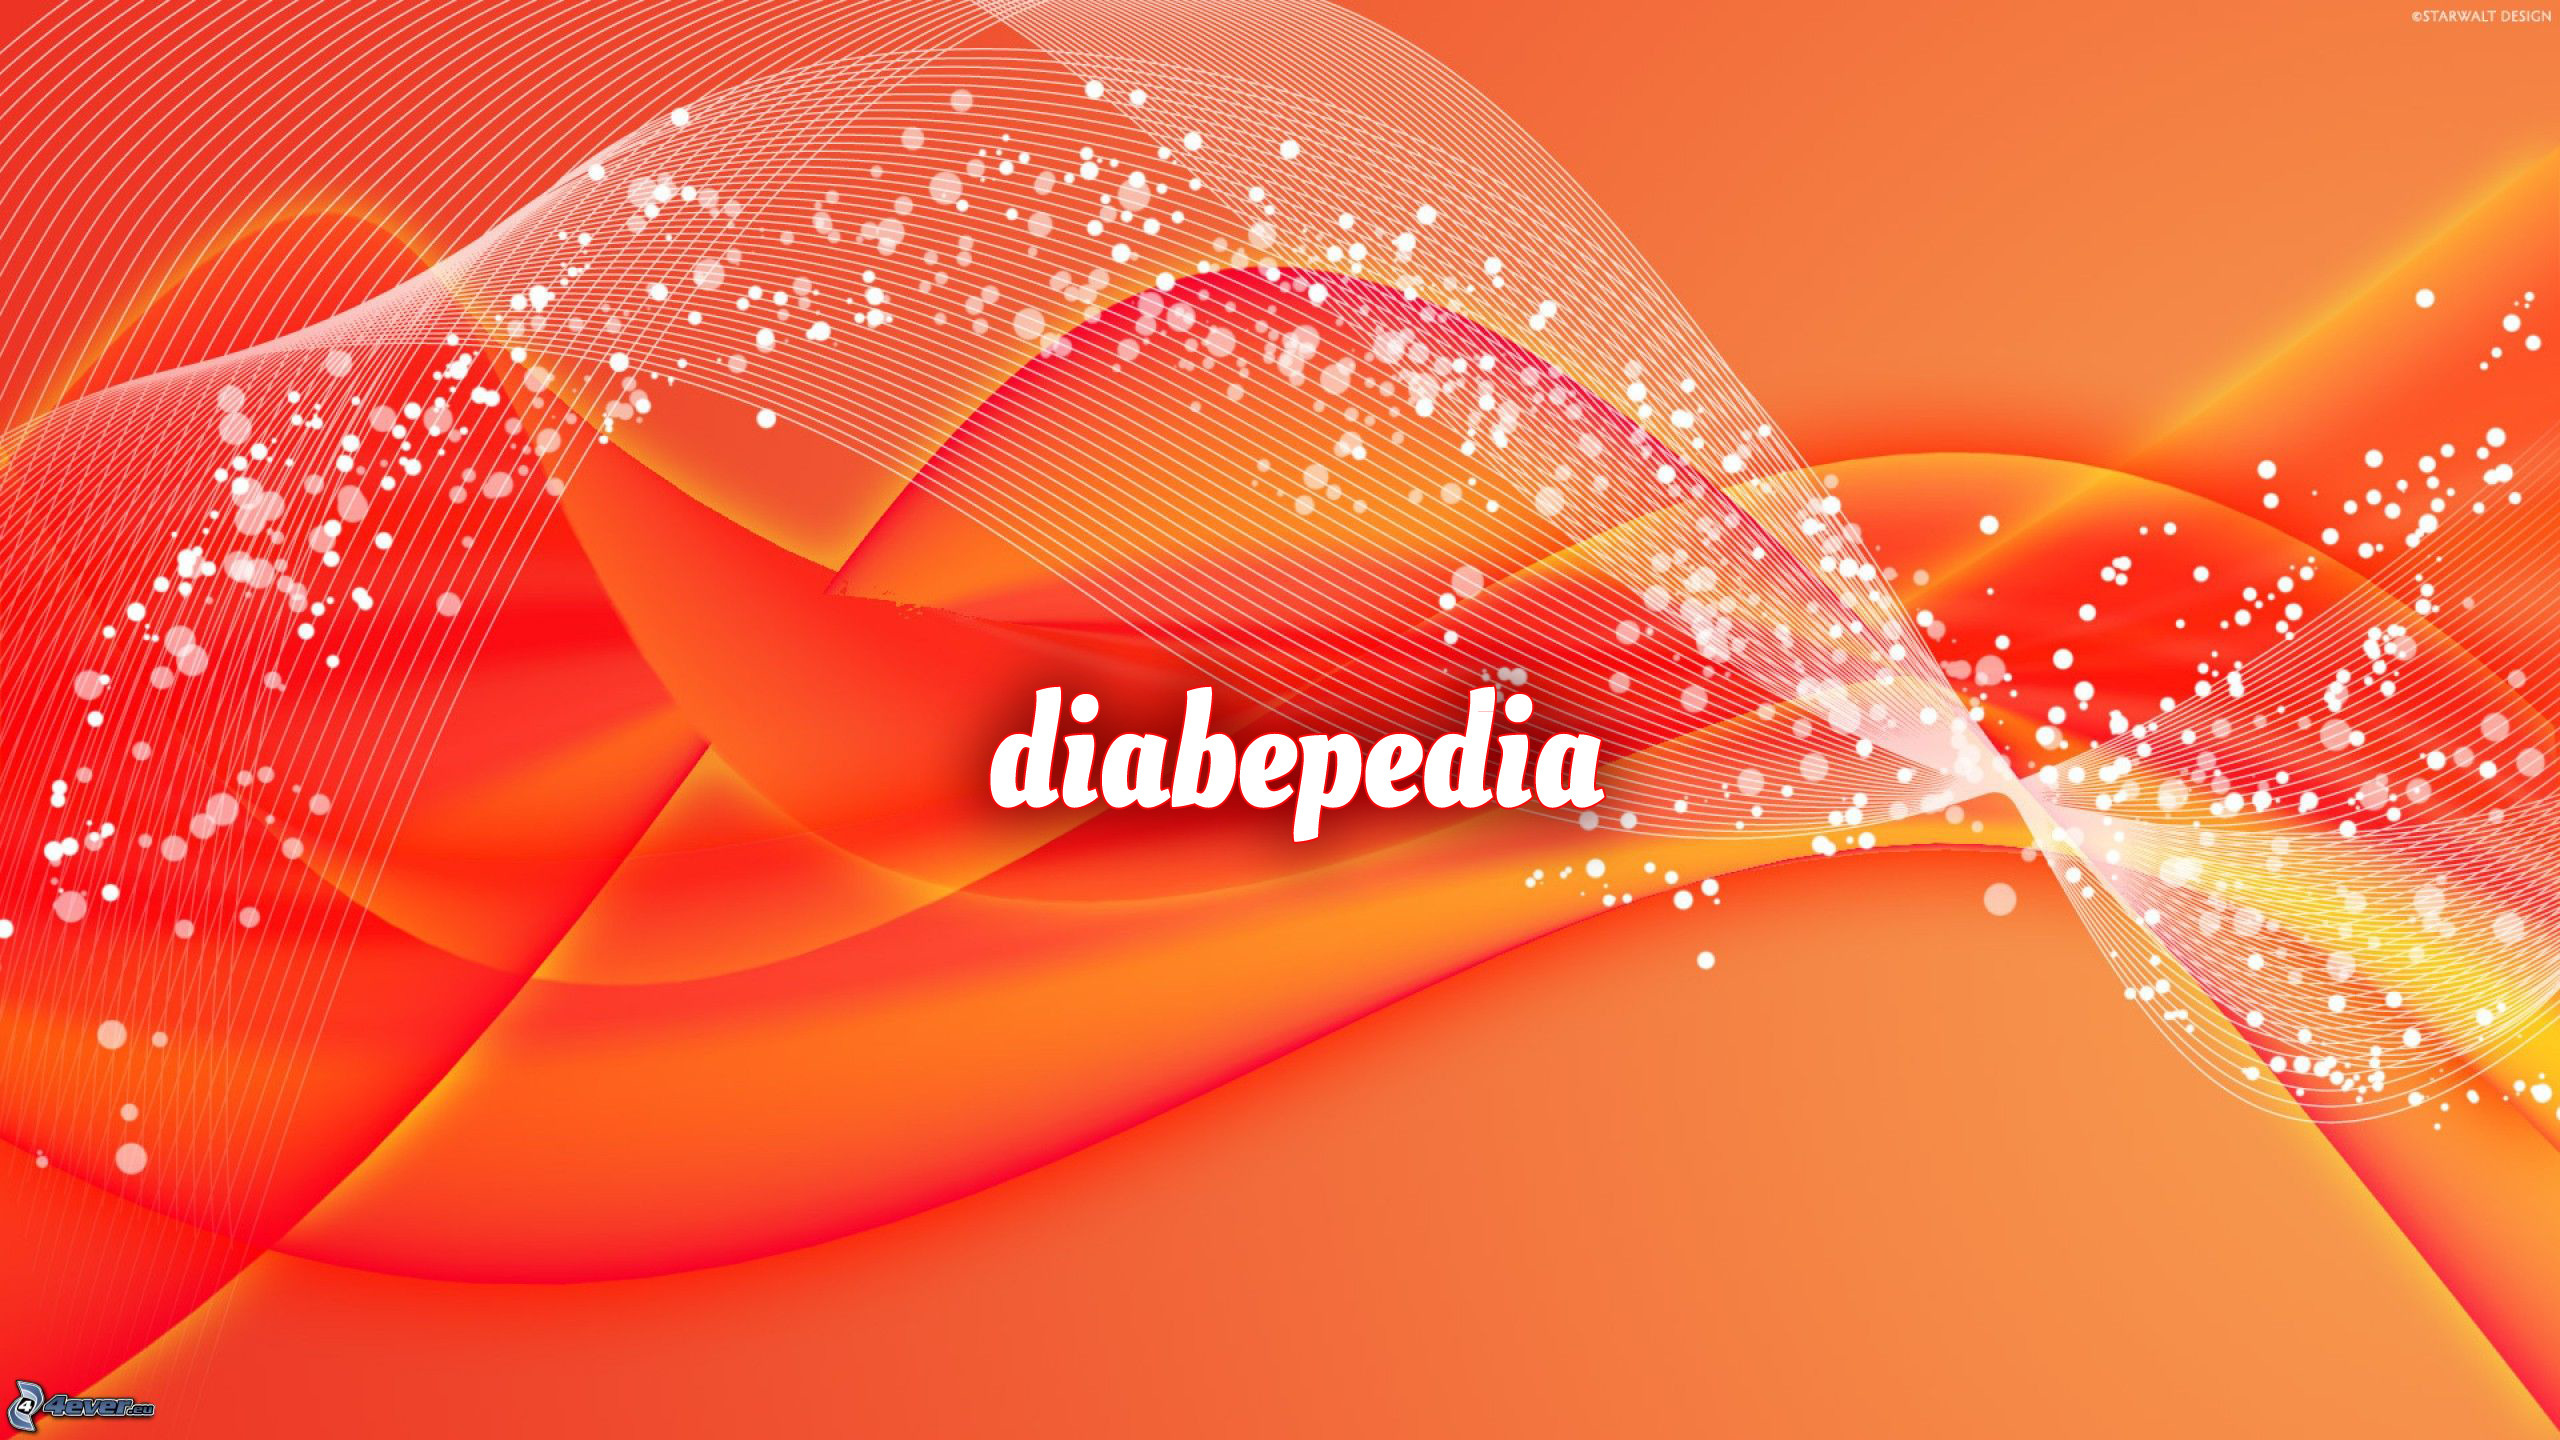 diabepedia  (@diabetes-hoy) Cover Image